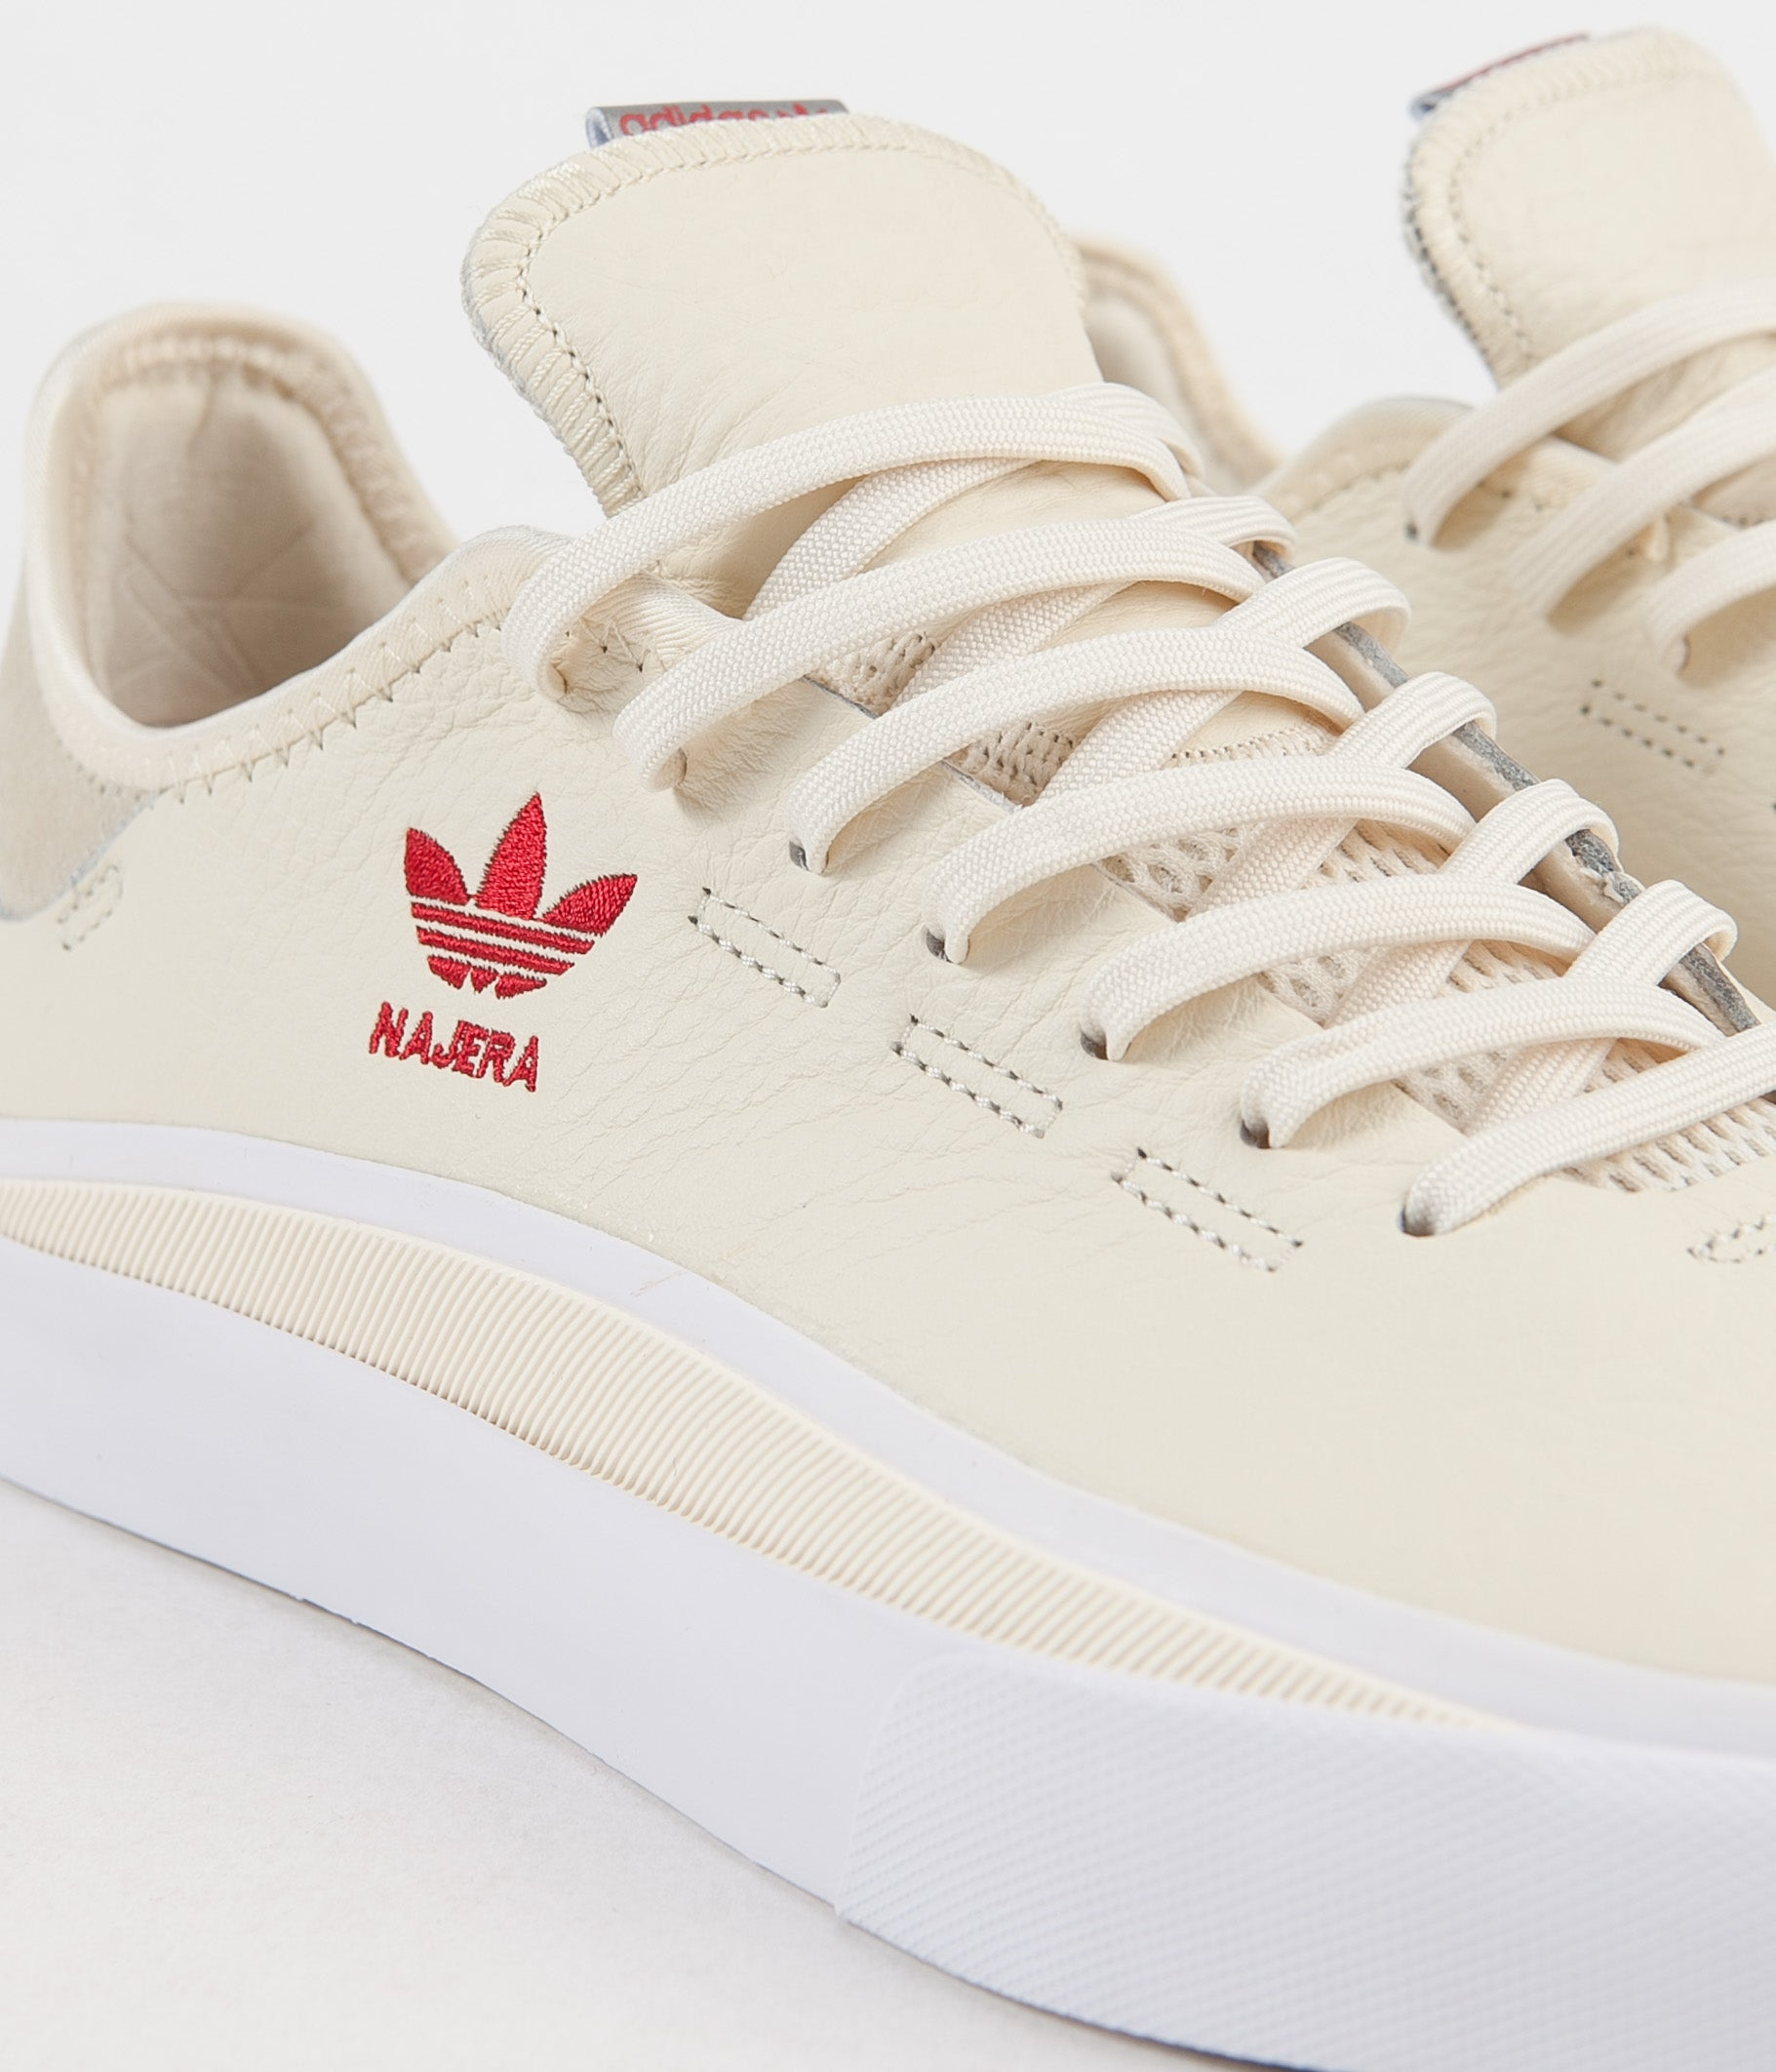 Adidas Sabalo 'Diego Najera' Shoes Cream White White